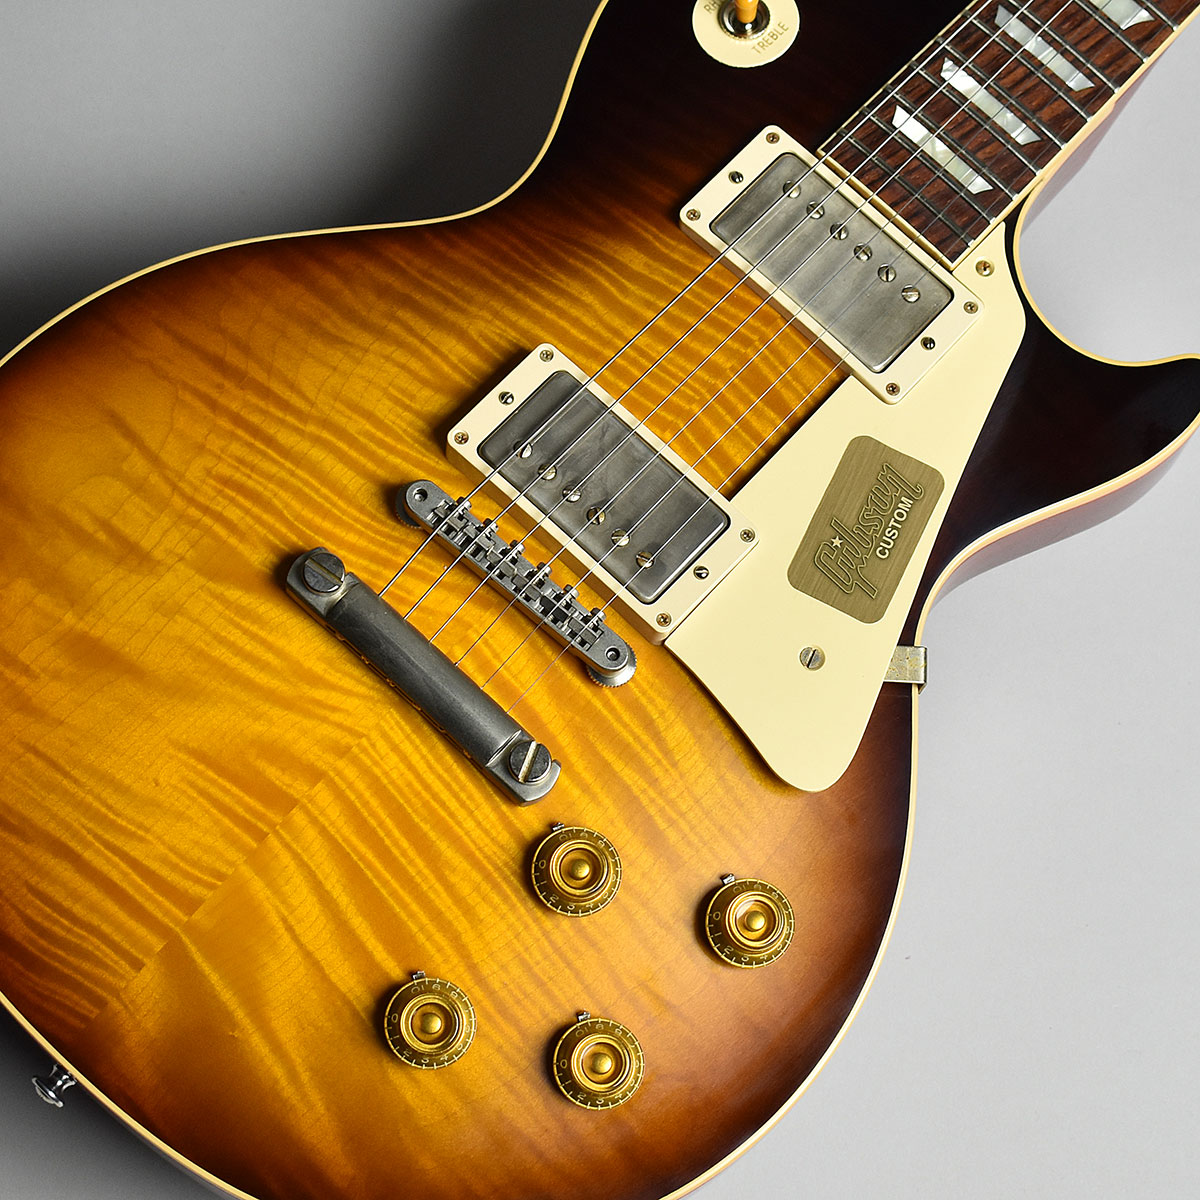 Gibson Custom Shop 1959 Les Paul Standard VOS Kindred Burst Fade S/N:971326 【ギブソン カスタムショップ】【未展示品】